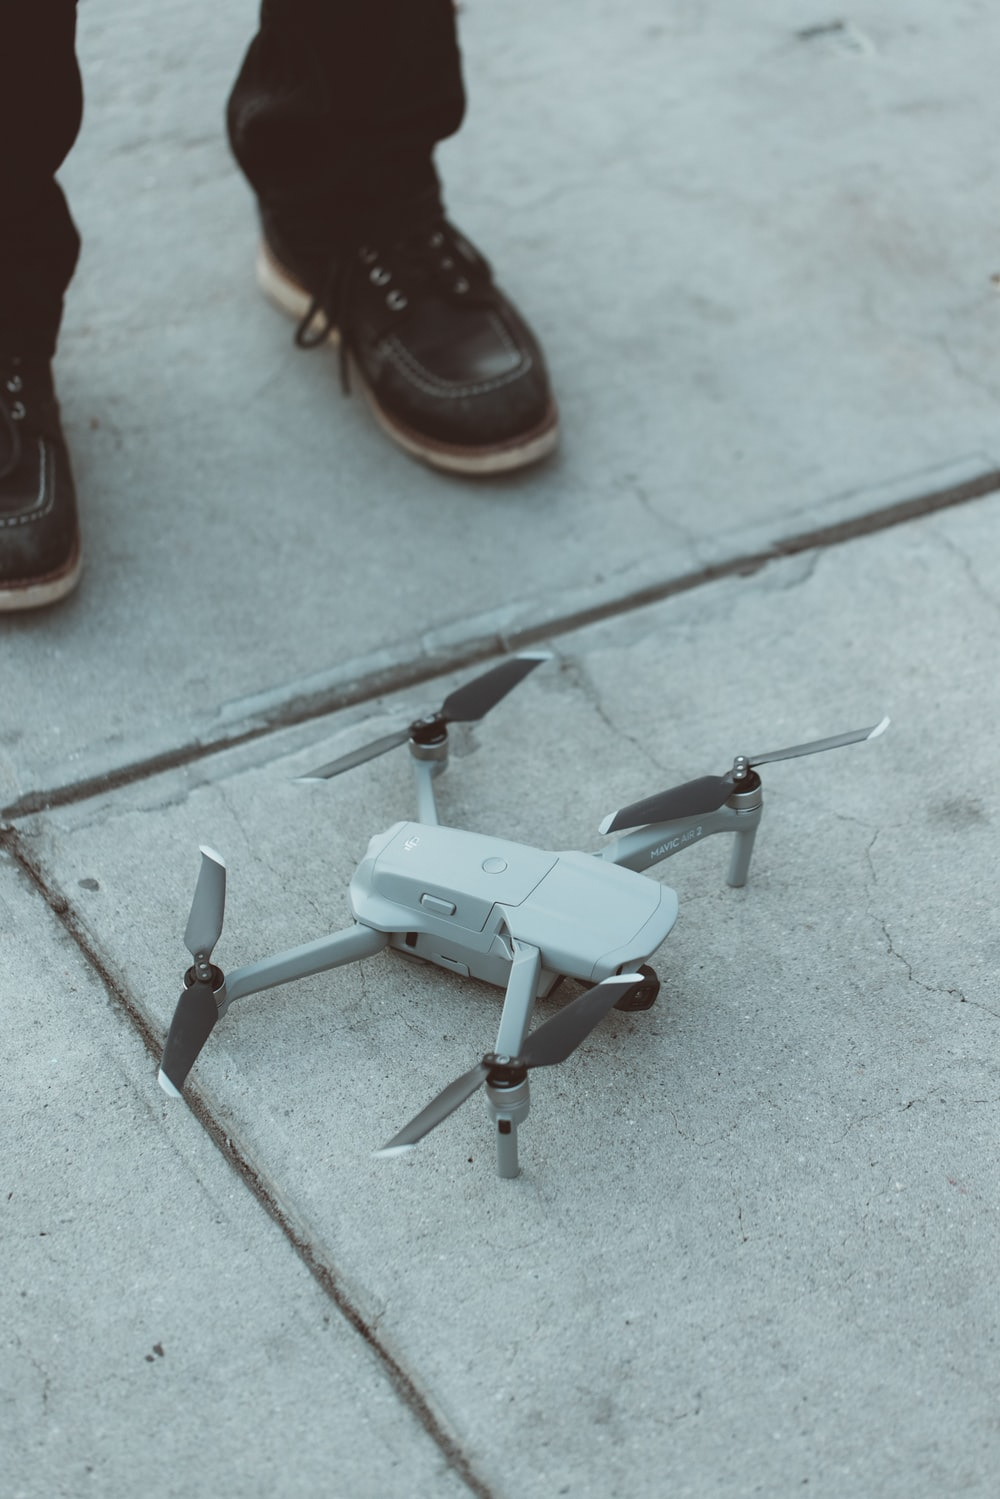 white quadcopter drone on floor